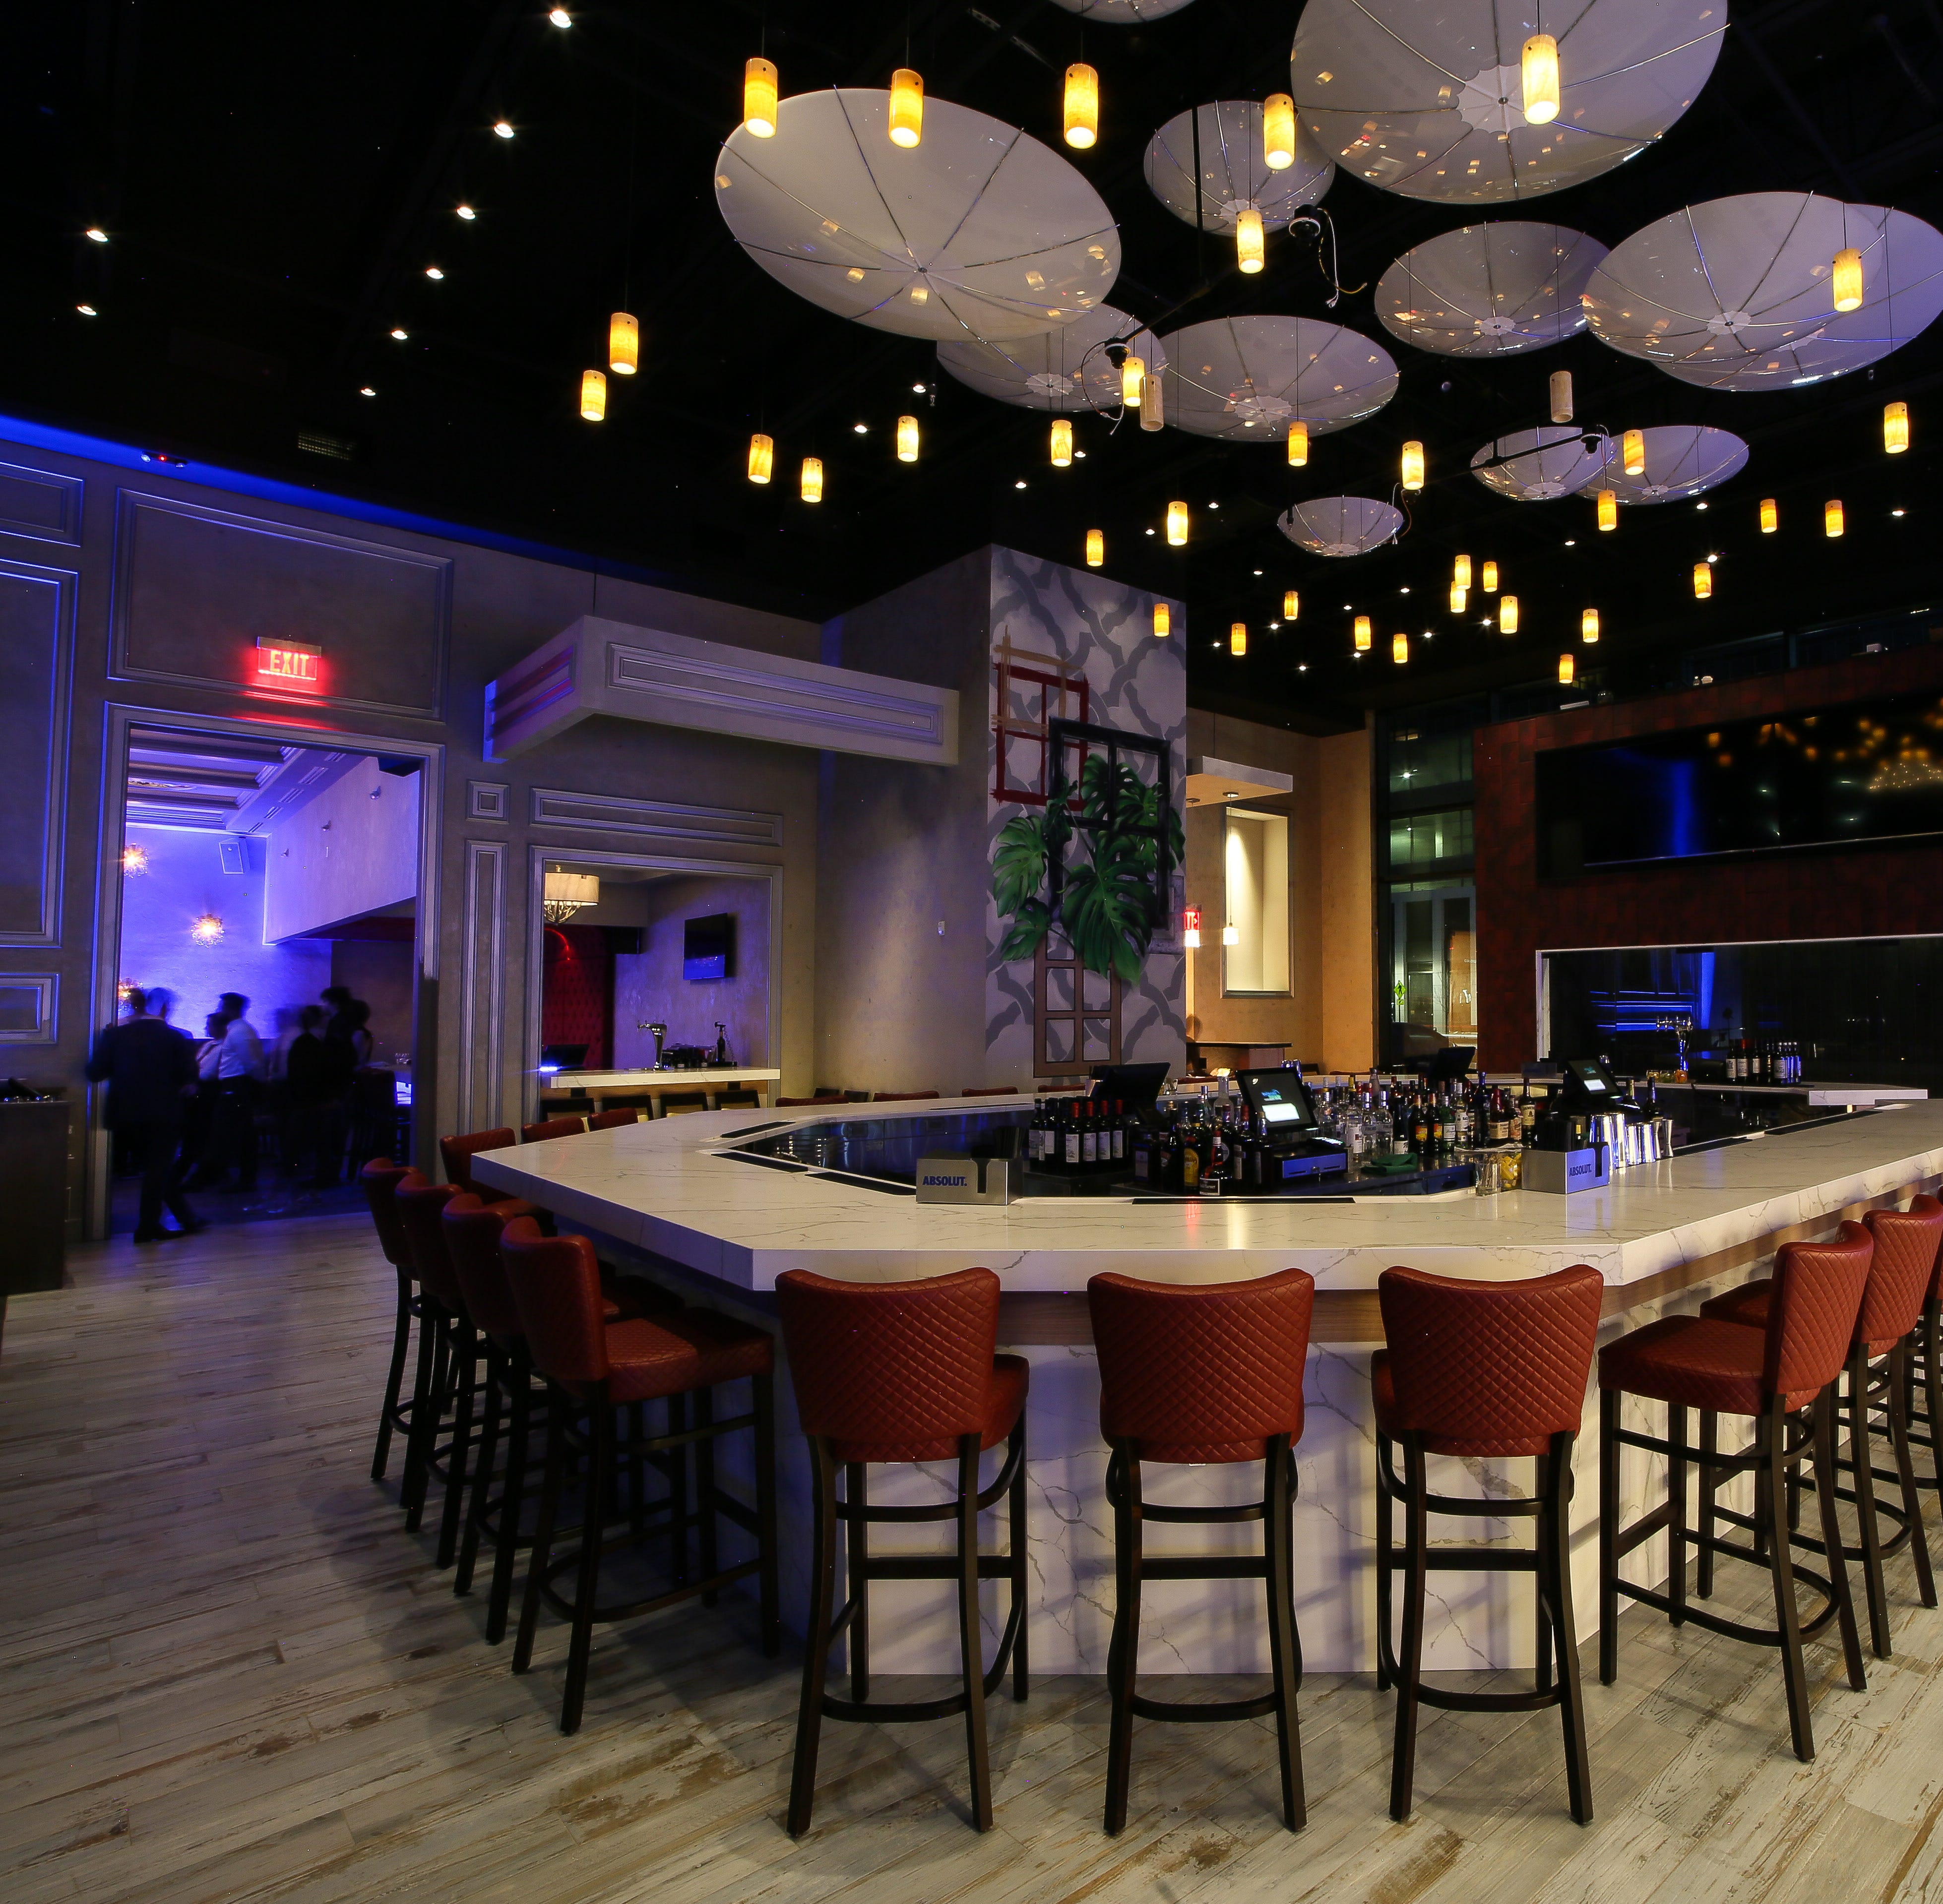 $3M Ventanas Restaurant and Lounge now open with celebrity chef David Burke at the helm